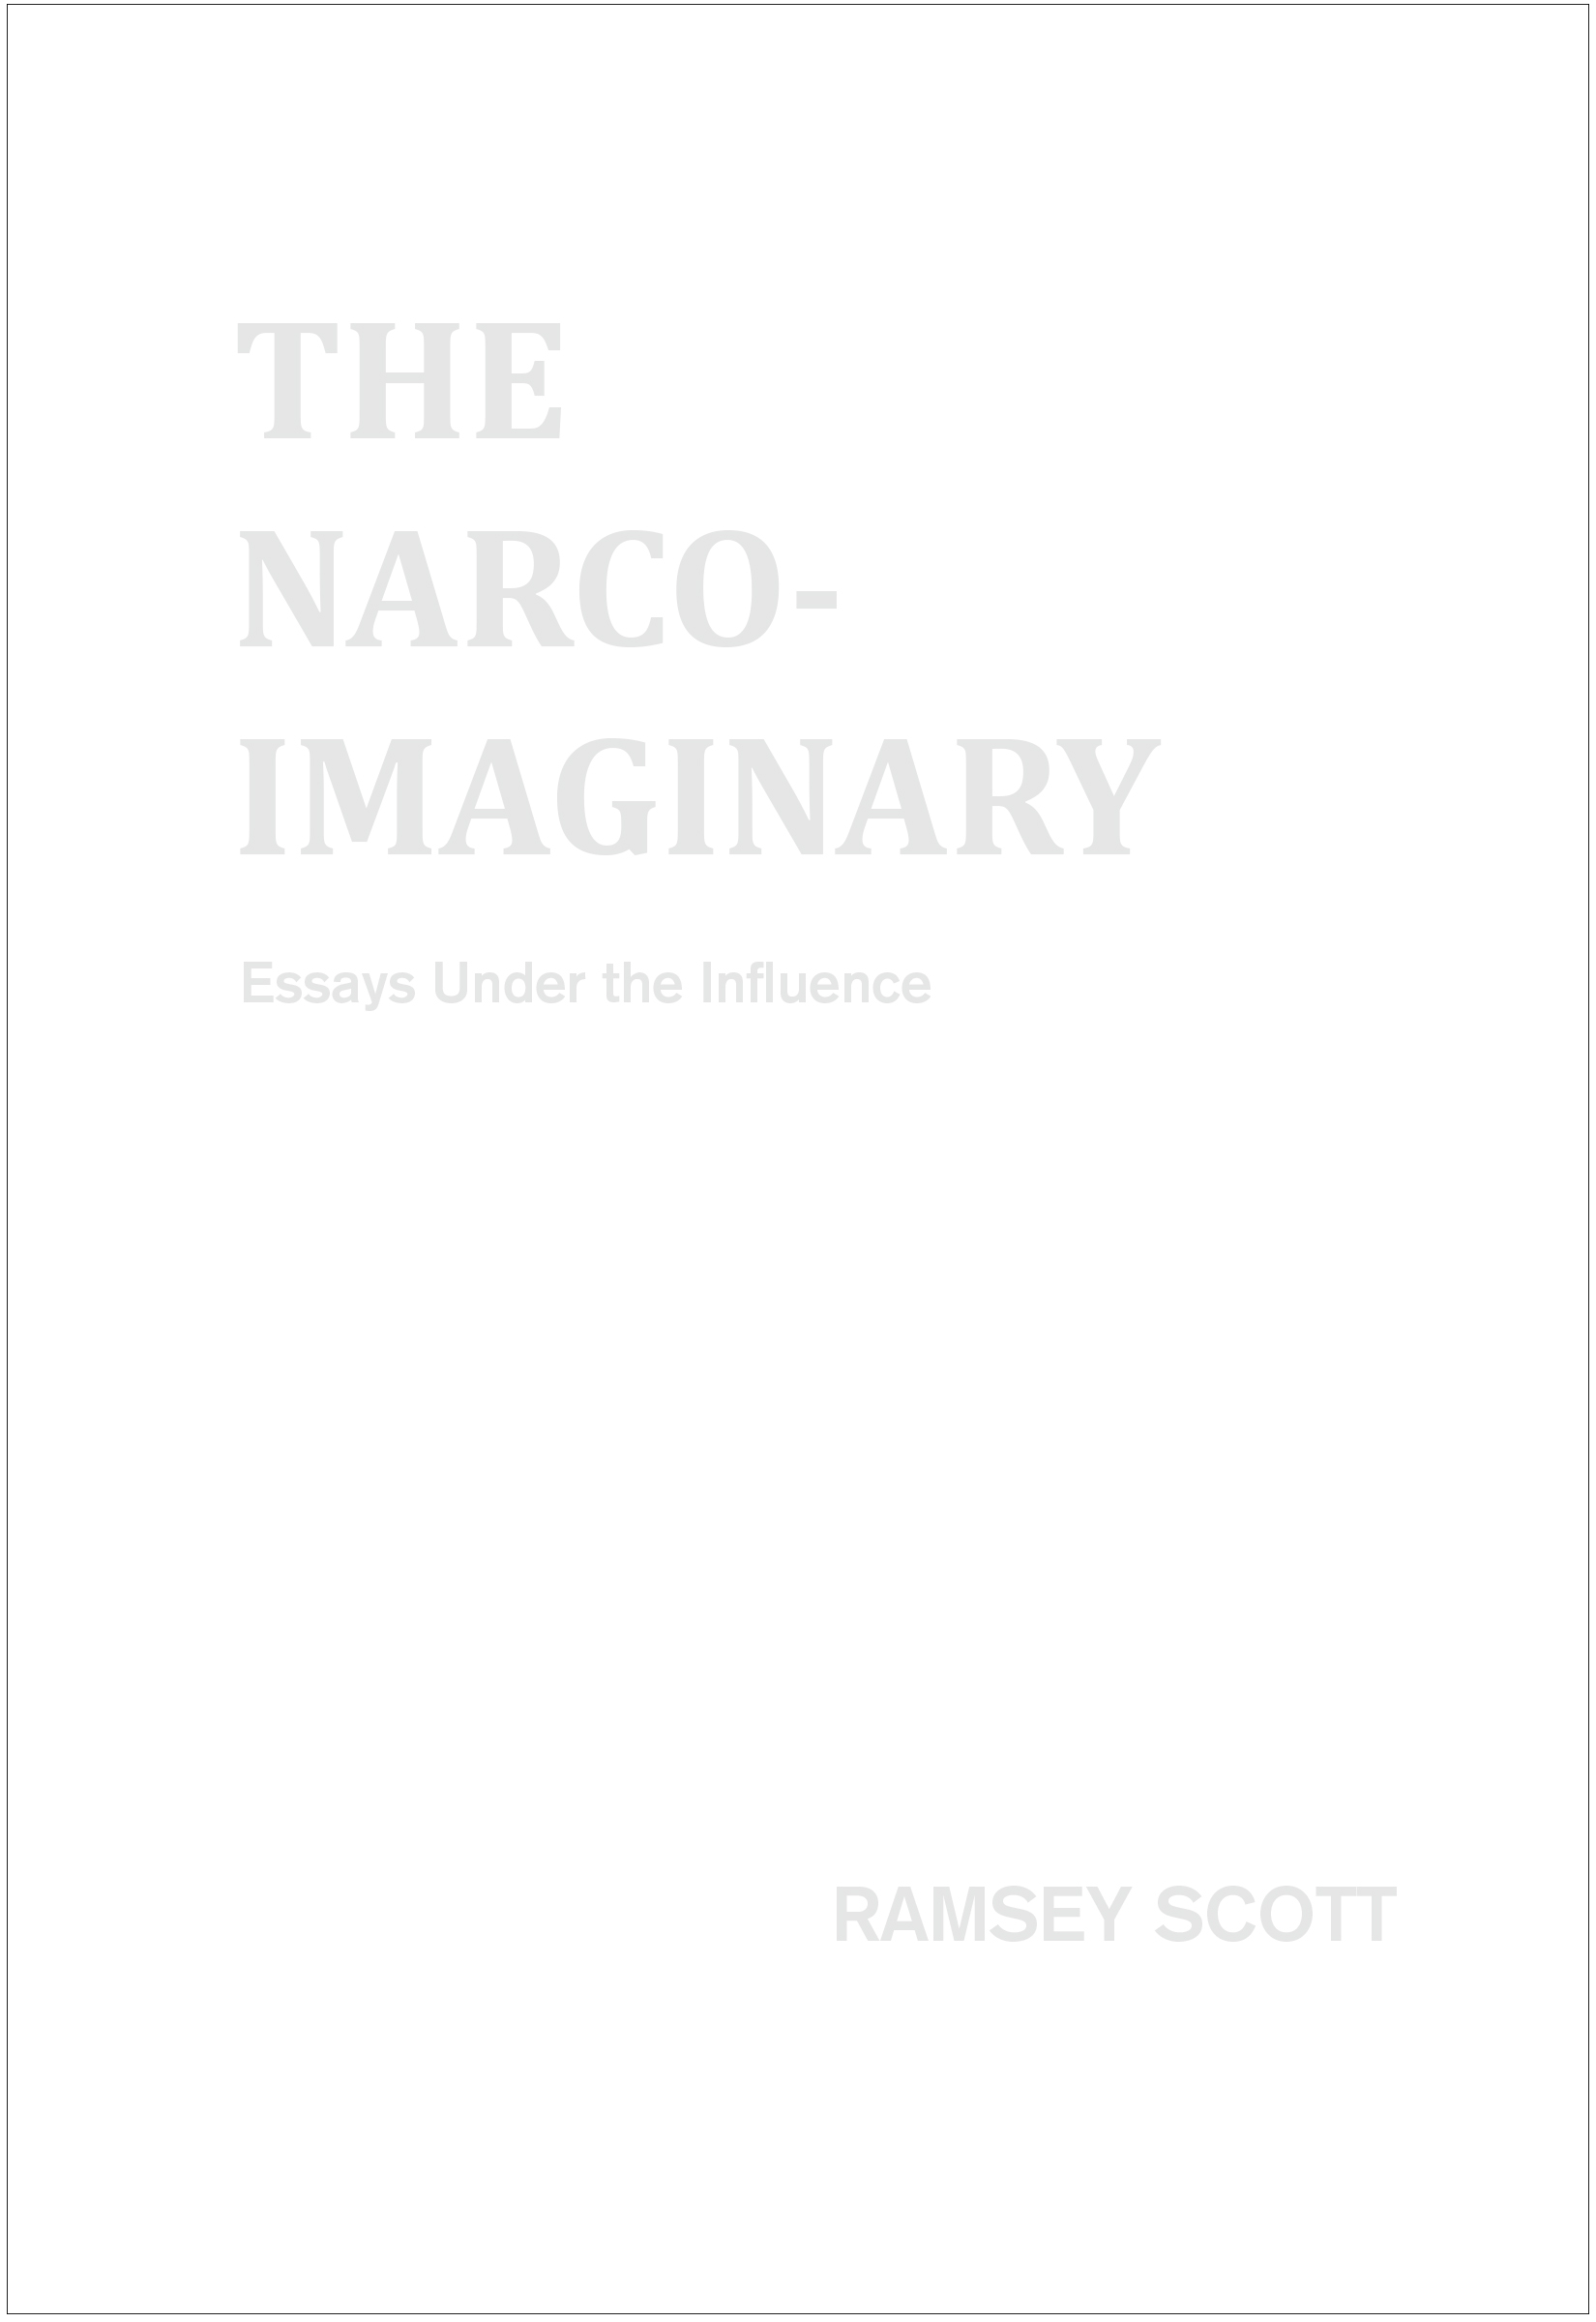 book review the narco imaginary essays under the influence by book review the narco imaginary essays under the influence by ramsey scott